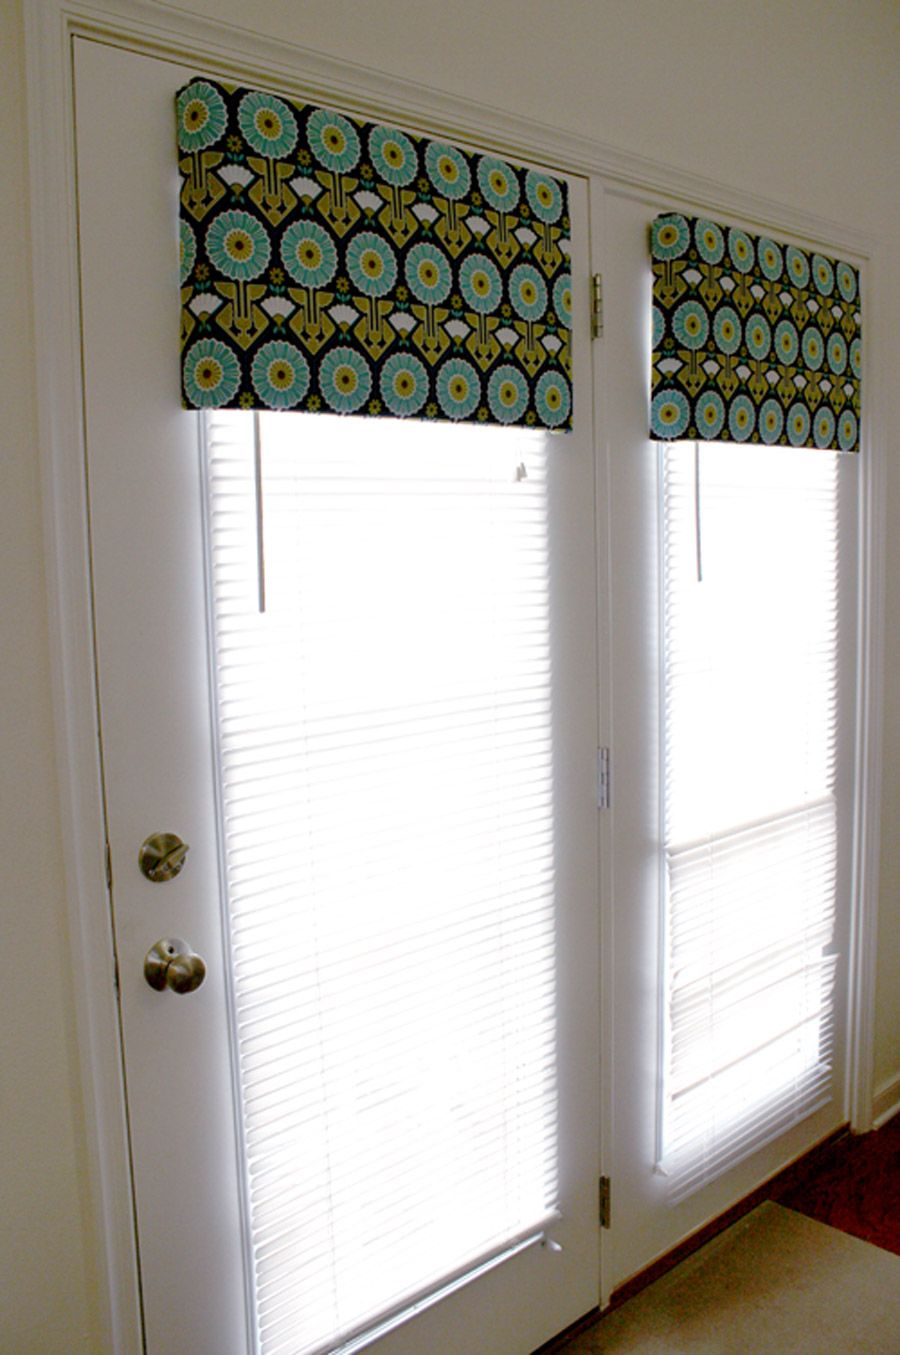 d room choice more and thermal enjoy high window insulated fun item perfect than single you cornice fashion the living also save of is a y valance treatment panel to adjustable enables it for home nicetown i distinctive blackout